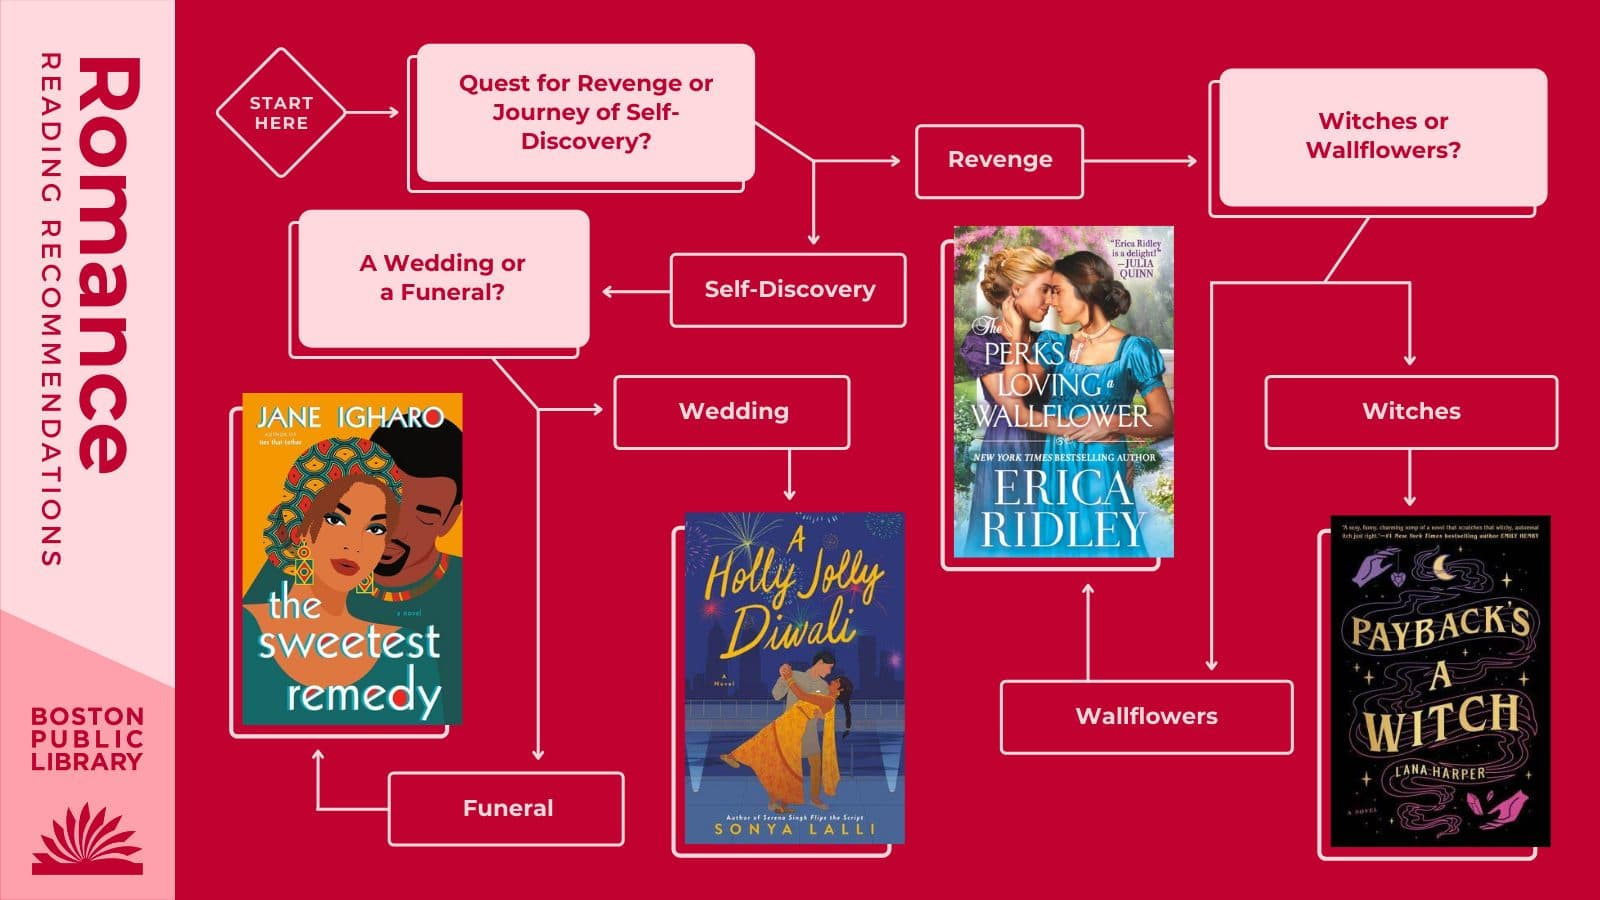 Q1: Quests for Revenge or Journeys of Self-Discovery? Quests for Revenge → Q2: Witches or Wallflowers? Witches: Payback's a Witch by Lana Harper   Wallflowers: The Perks of Loving a Wallflower by Erica Ridley   Journeys of Self-Discovery → Q3: A Wedding or a Funeral? Wedding: A Holly Jolly Diwali by Sonya Lalli   Funeral: The Sweetest Remedy by Jane Igharo